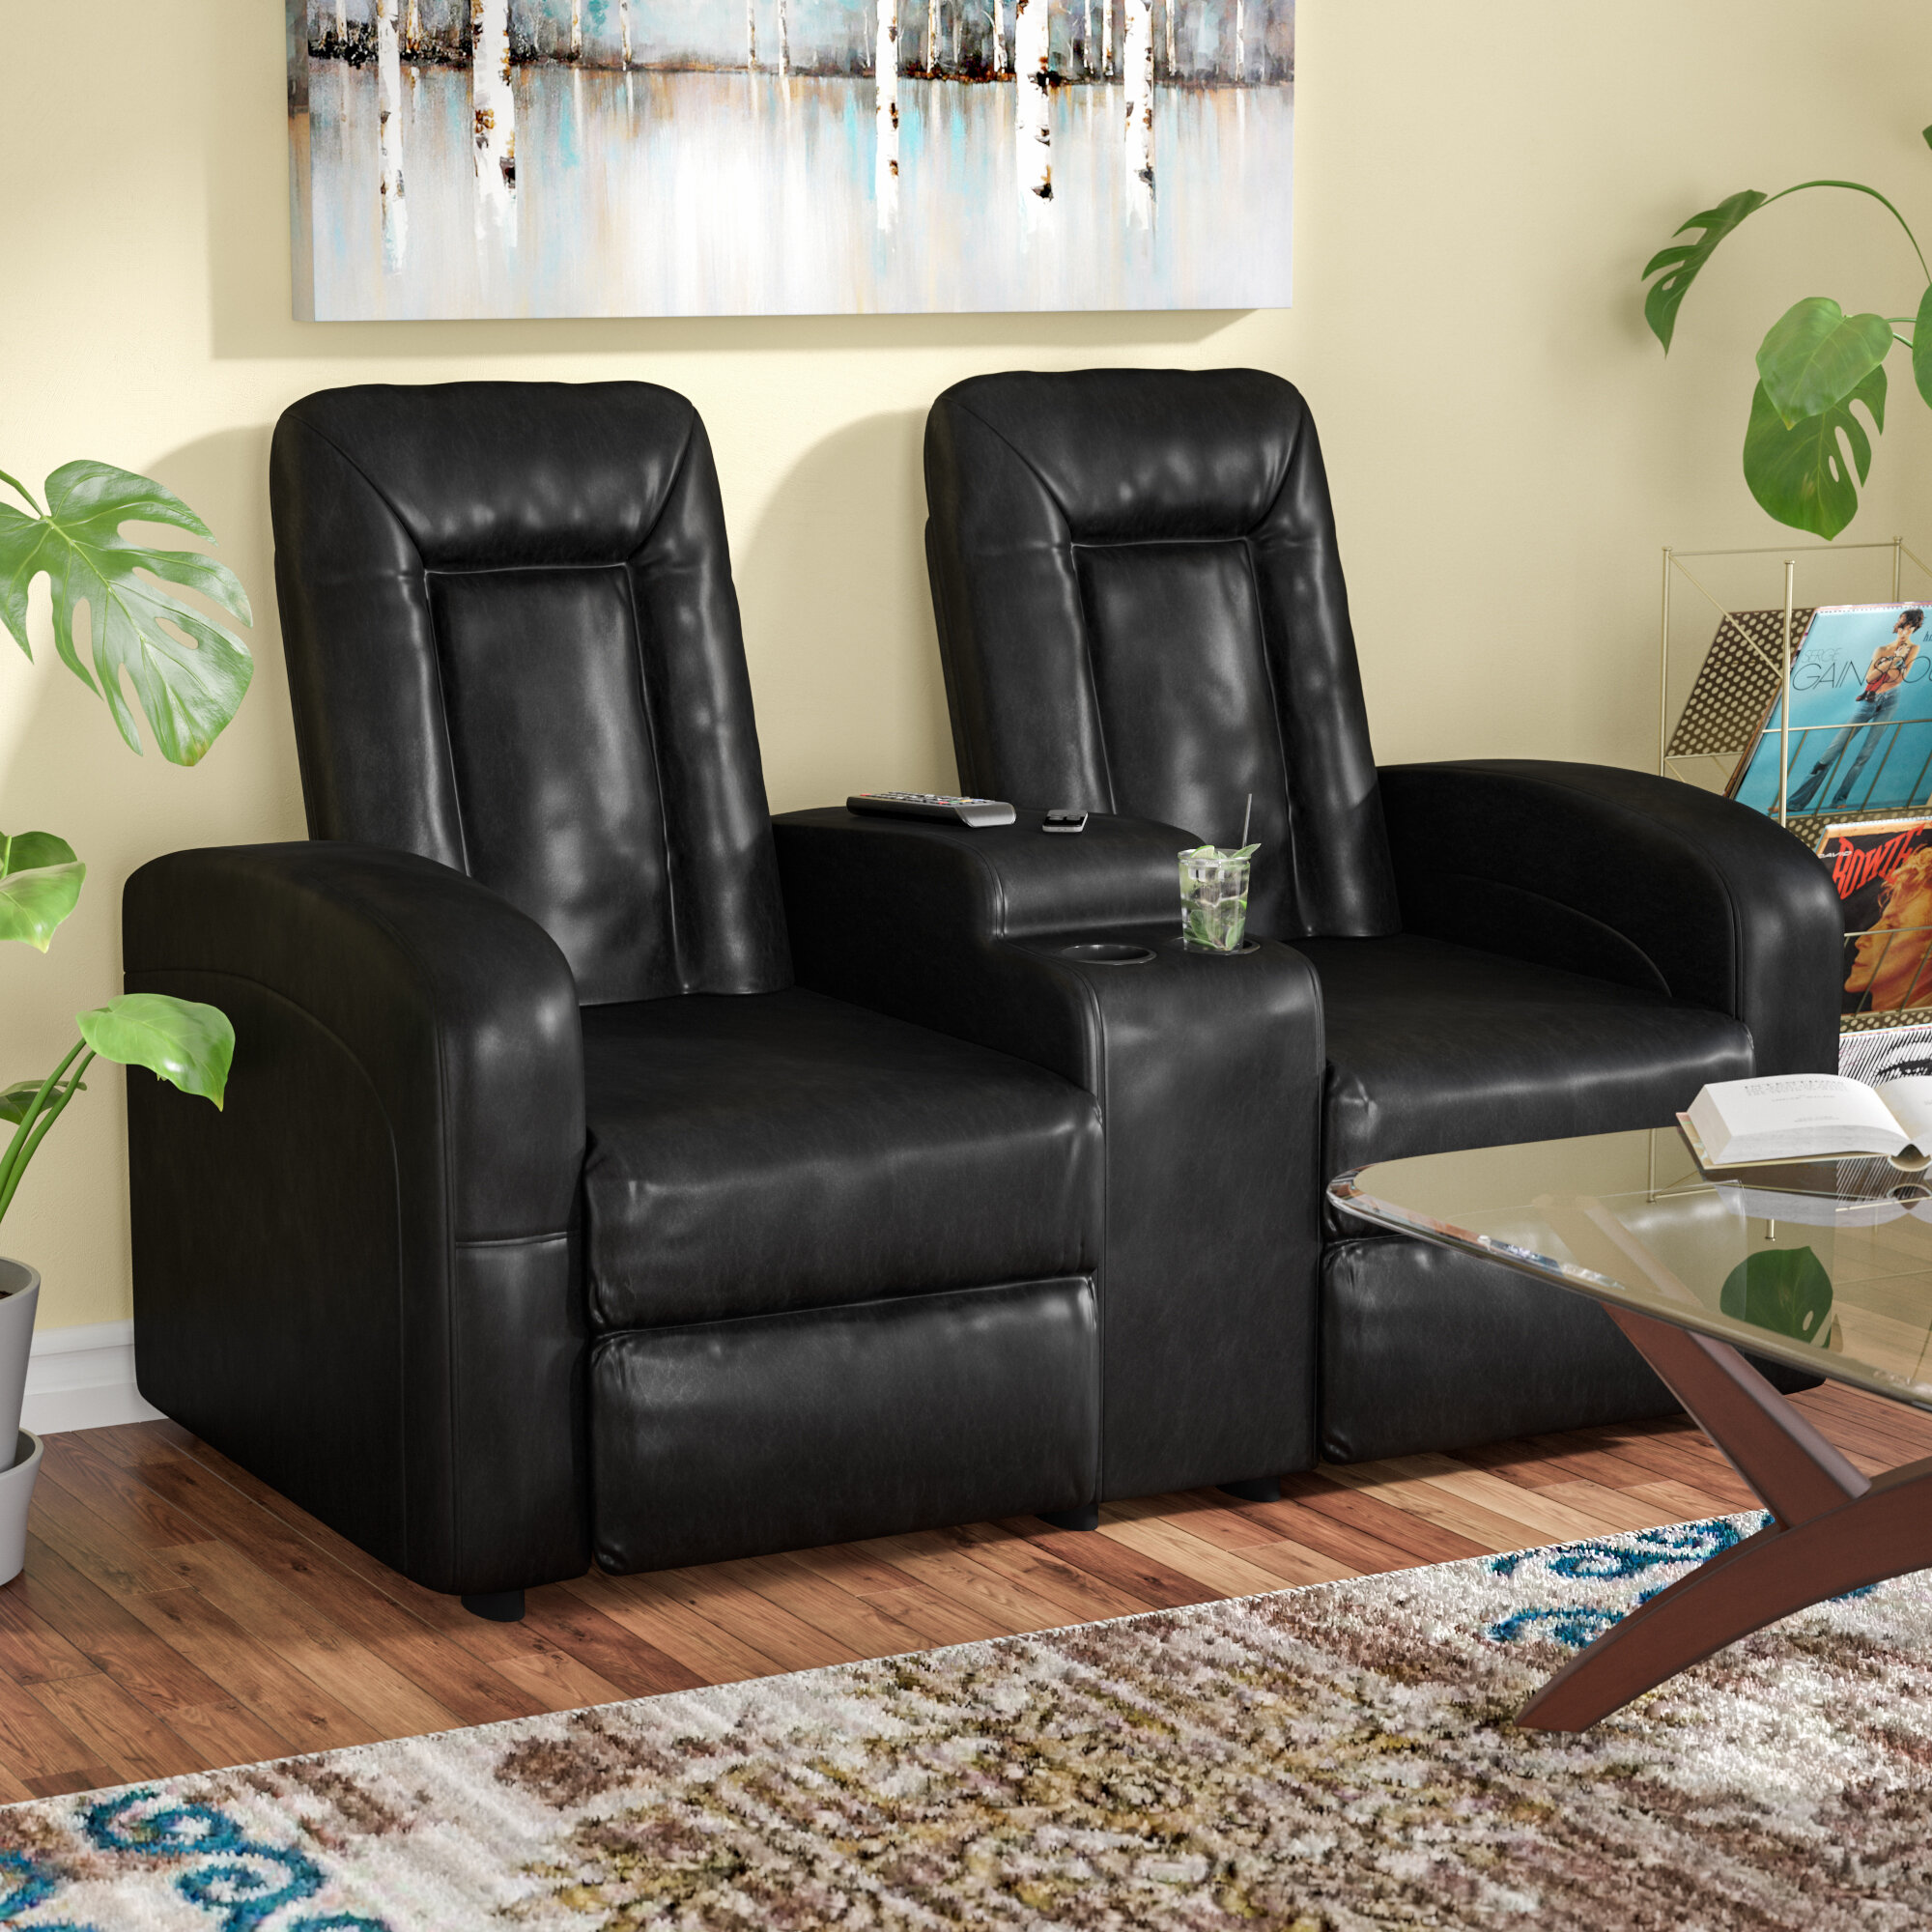 Red Barrel Studio Leather 2 Seat Home Theater Recliner with Storage ...